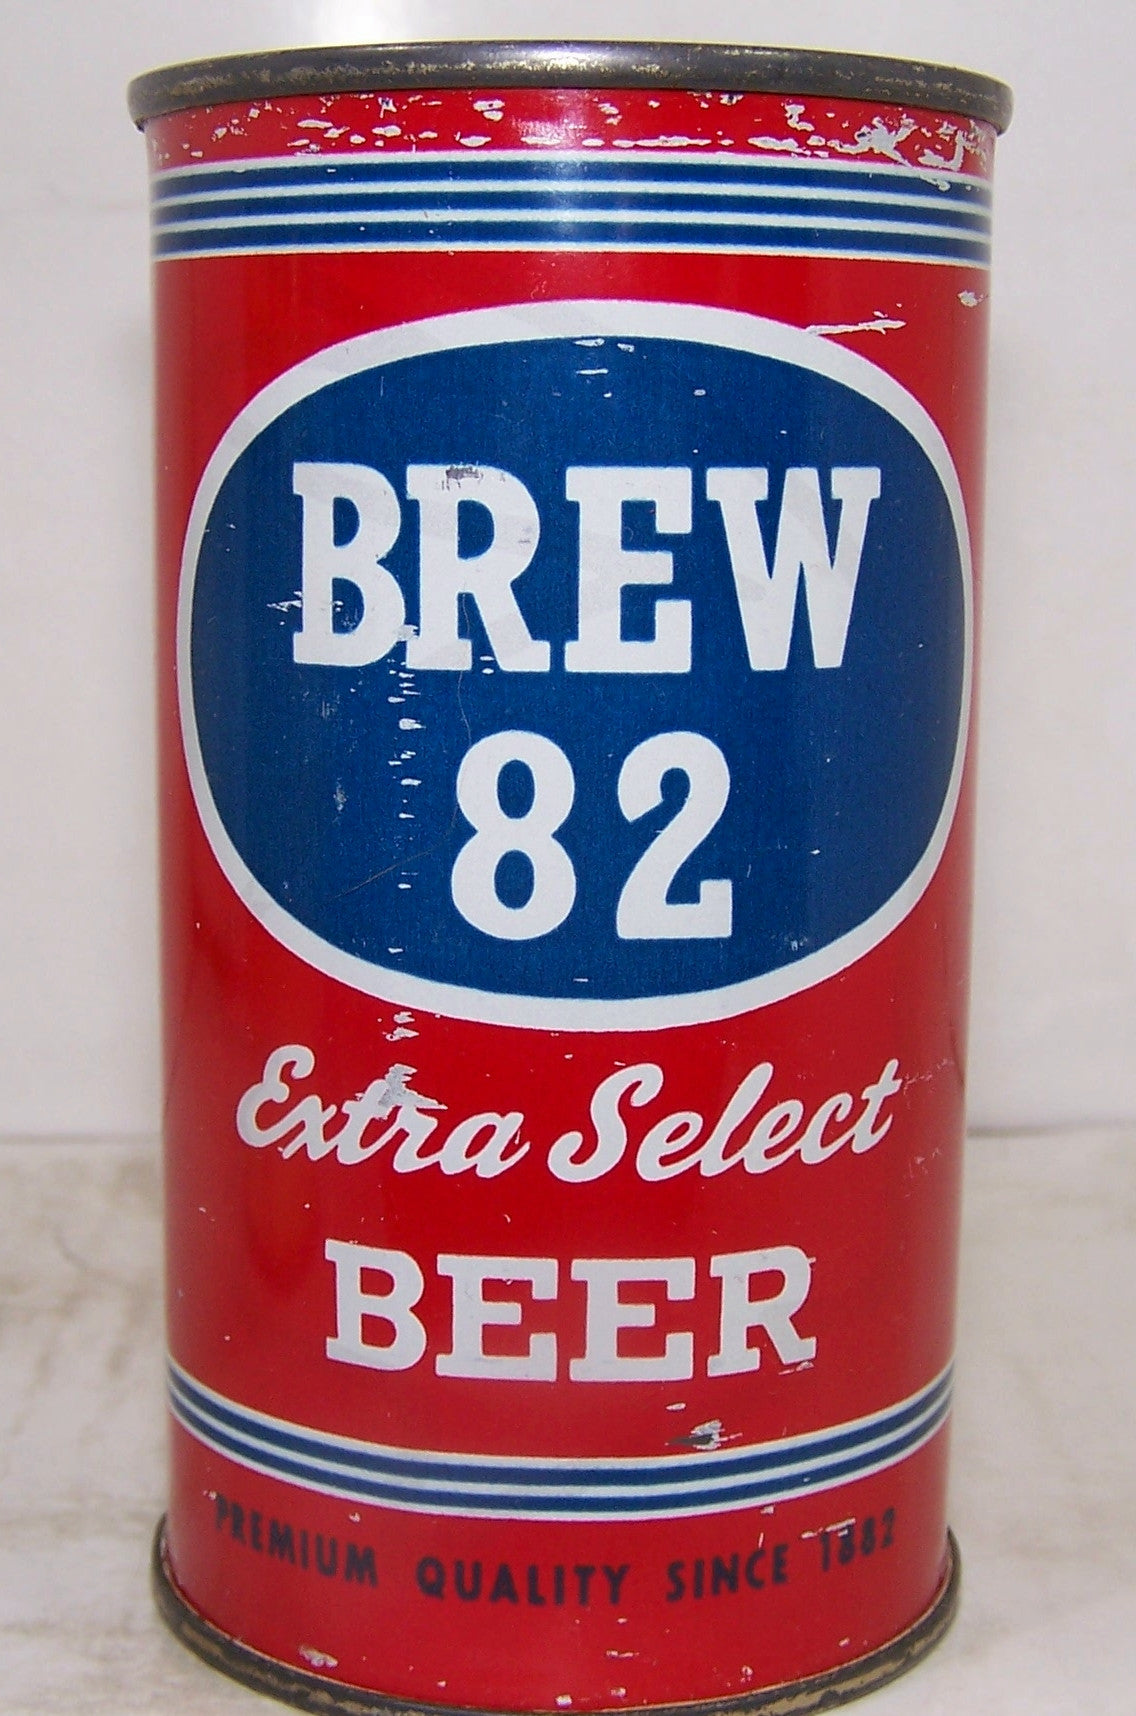 Brew 82 Extra Select Beer, USBC 41-28, Ohio, Grade 1- Sold 6/5/15